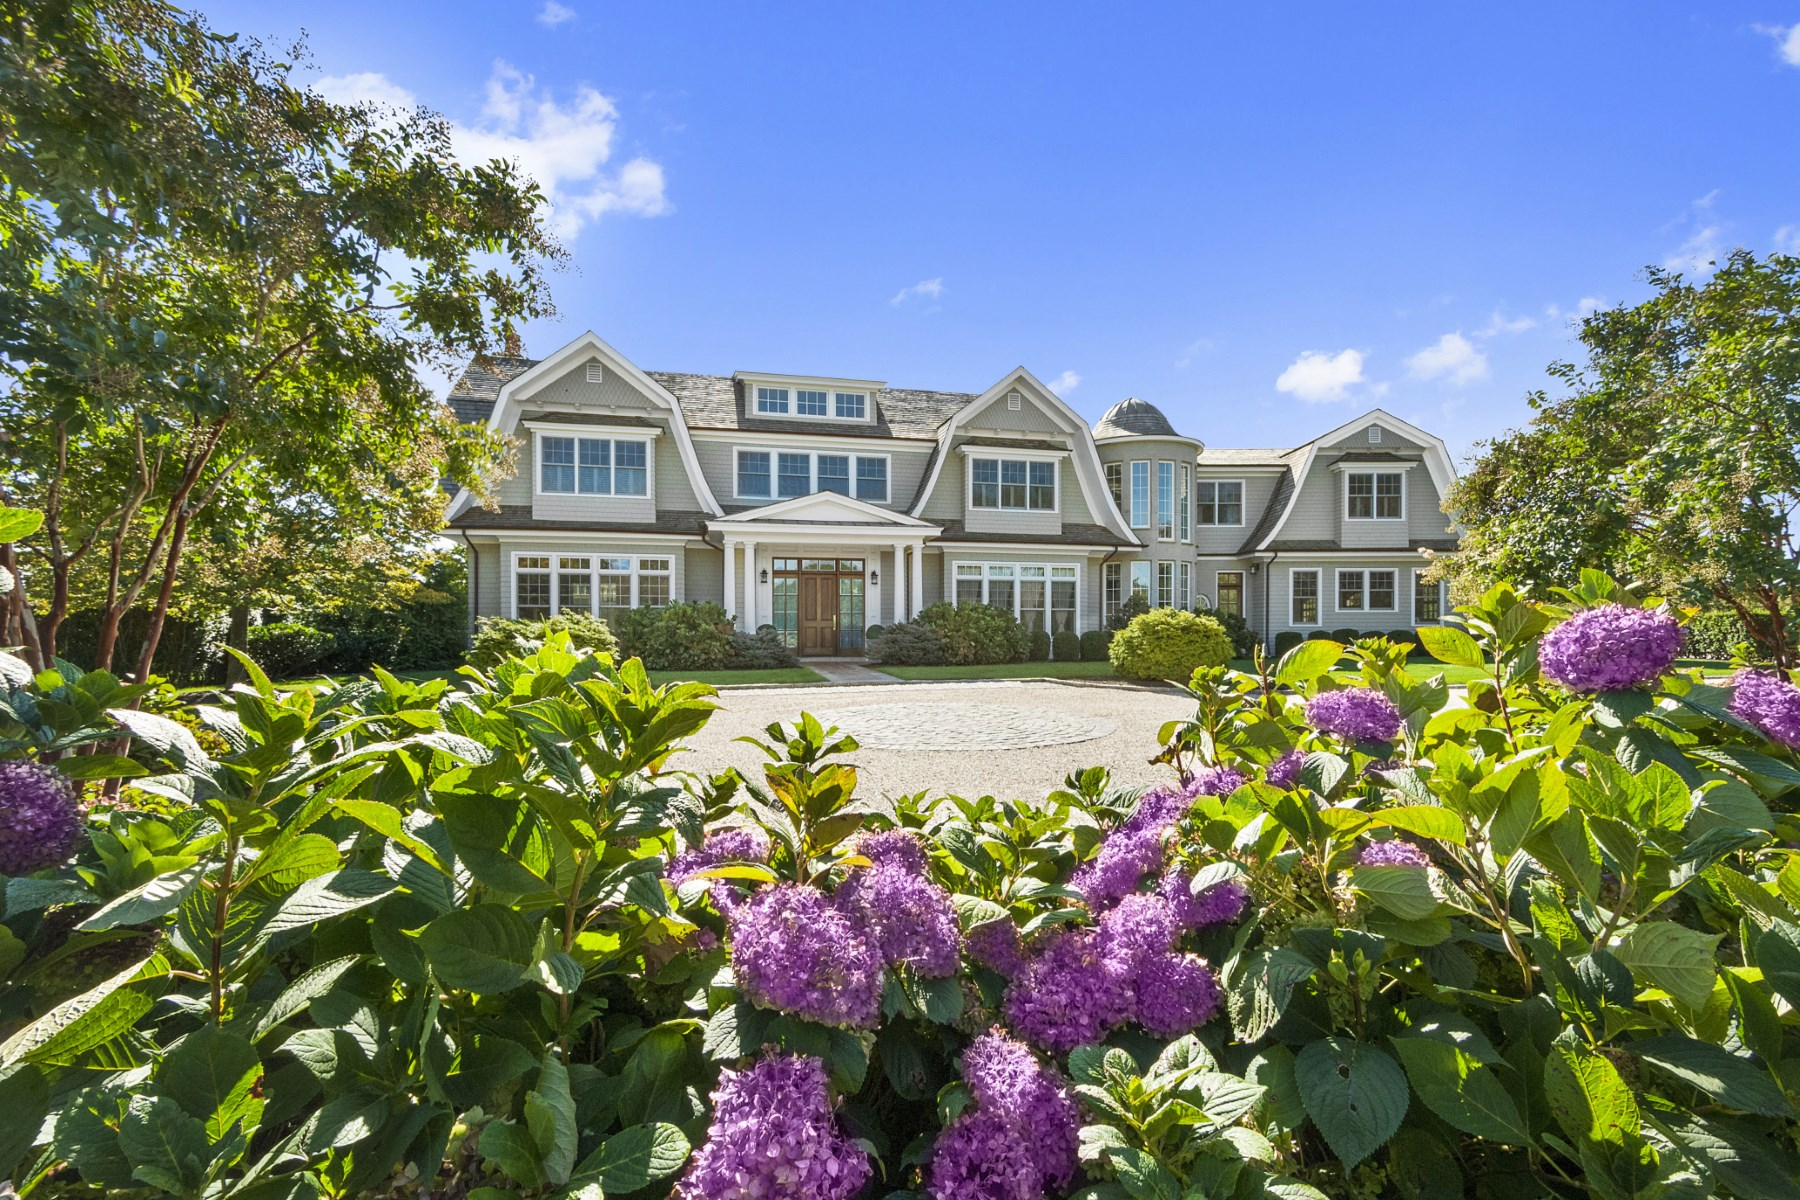 Single Family Home for Sale at Sagaponac Traditional Sagaponack, New York 11962 United States